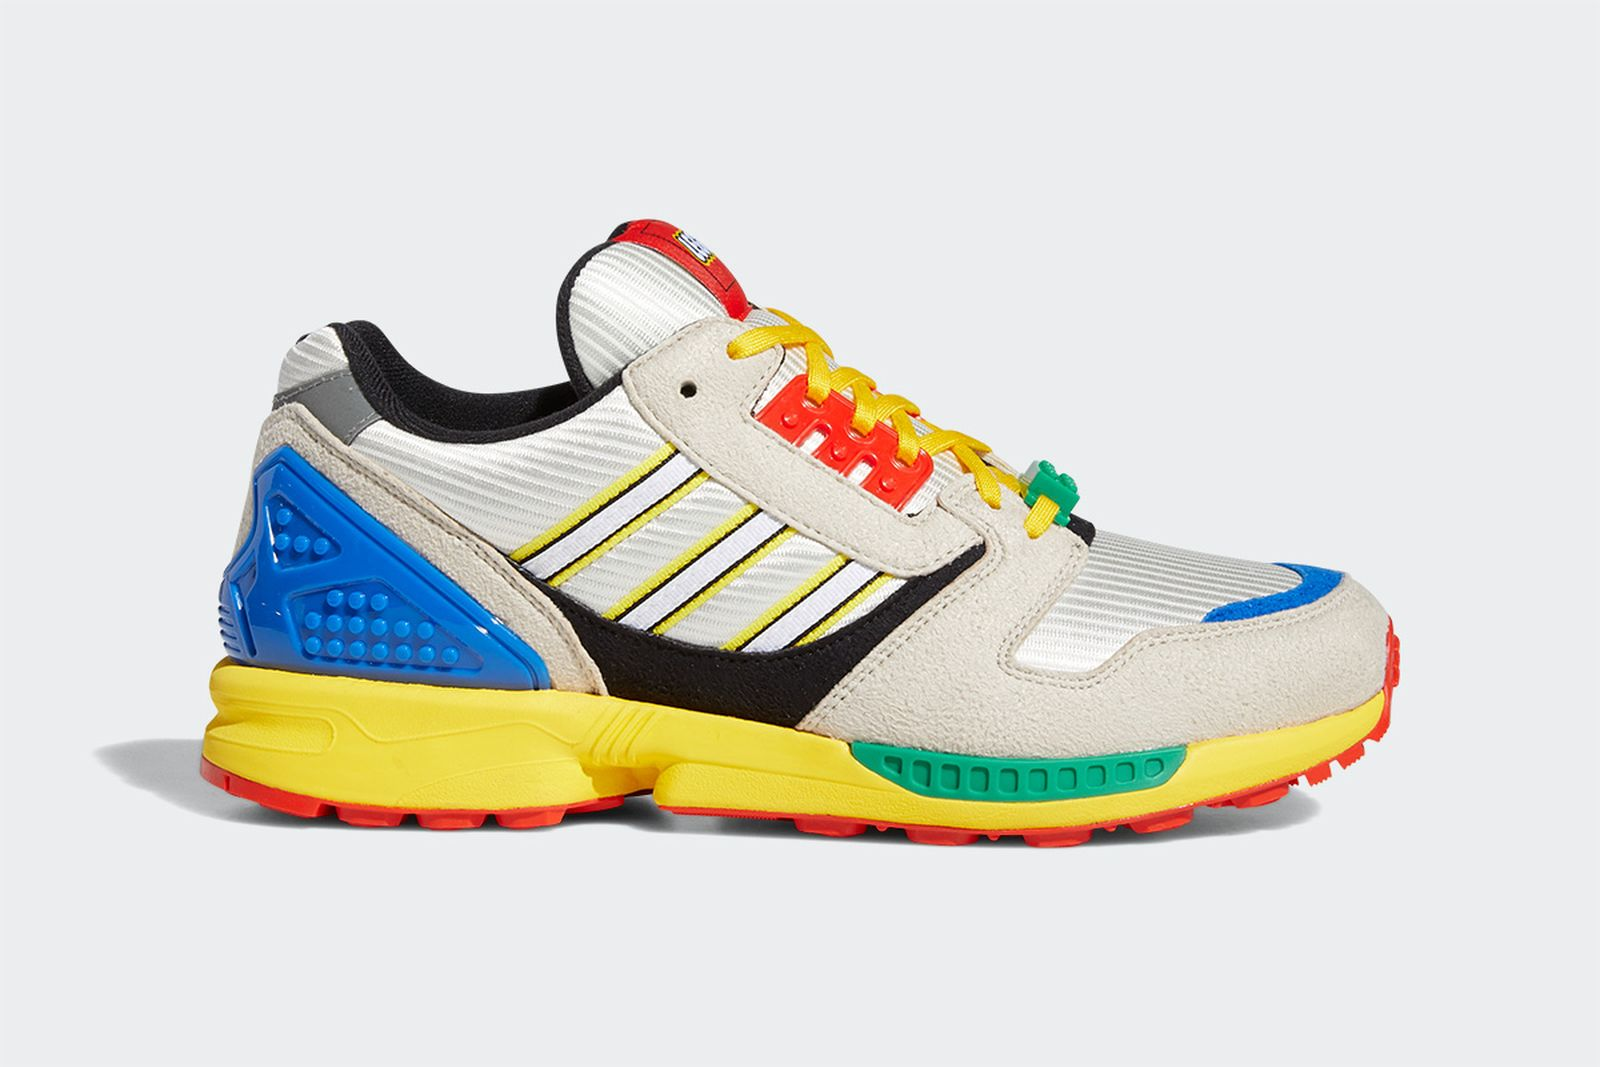 lego-adidas-zx-8000-release-date-price-06